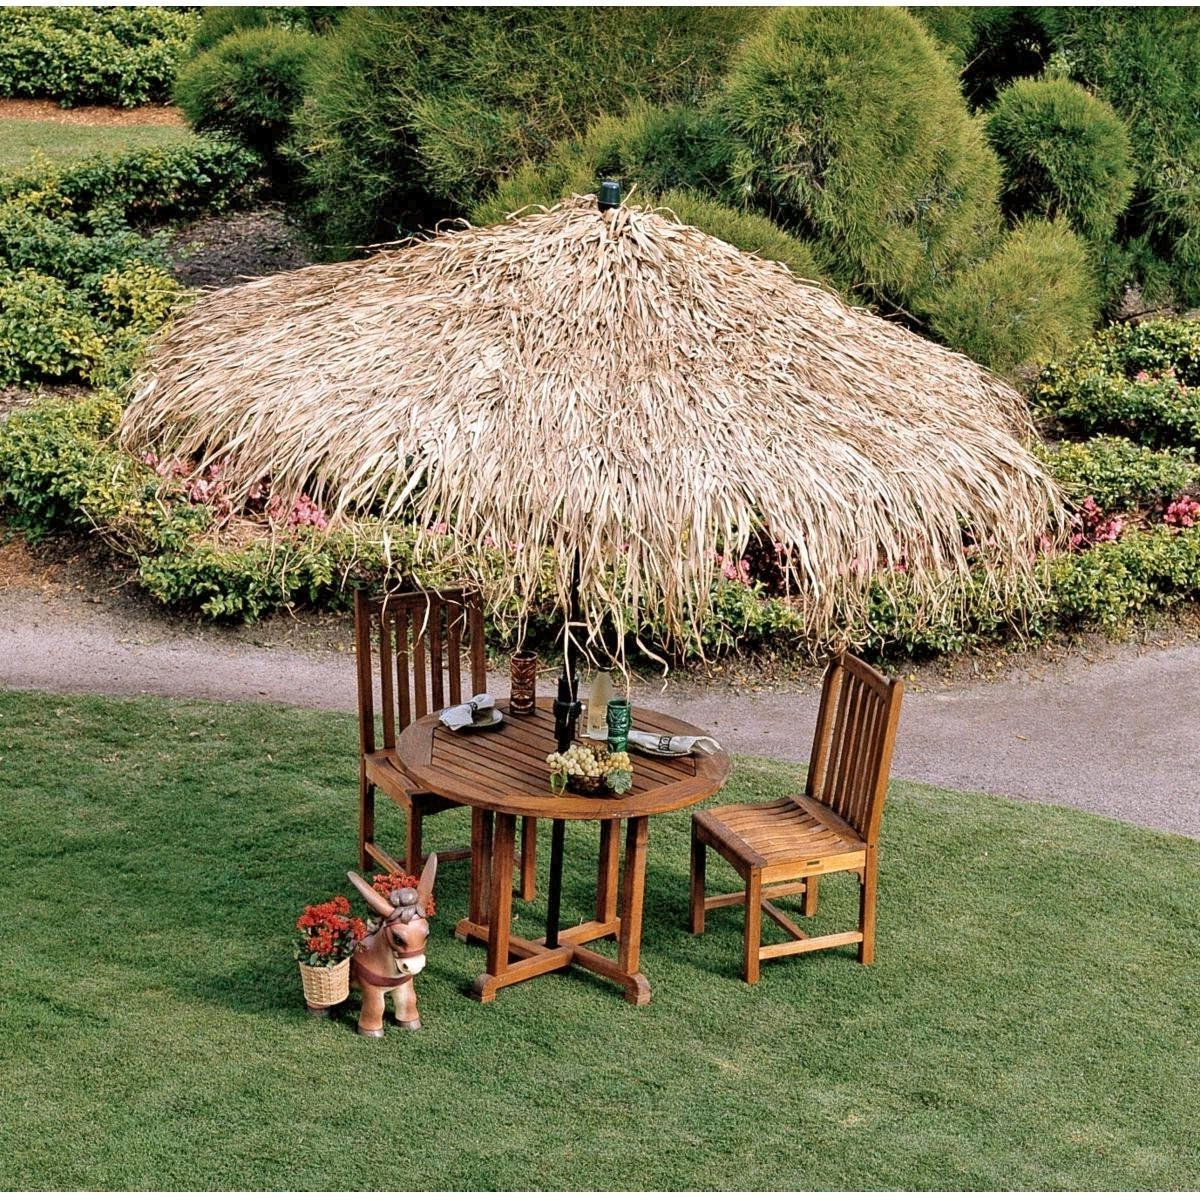 Exotic Patio Umbrellas Intended For Recent Tiki Hut Structures And Furniture Pieces For Homes – Outdoor Bar (View 6 of 20)